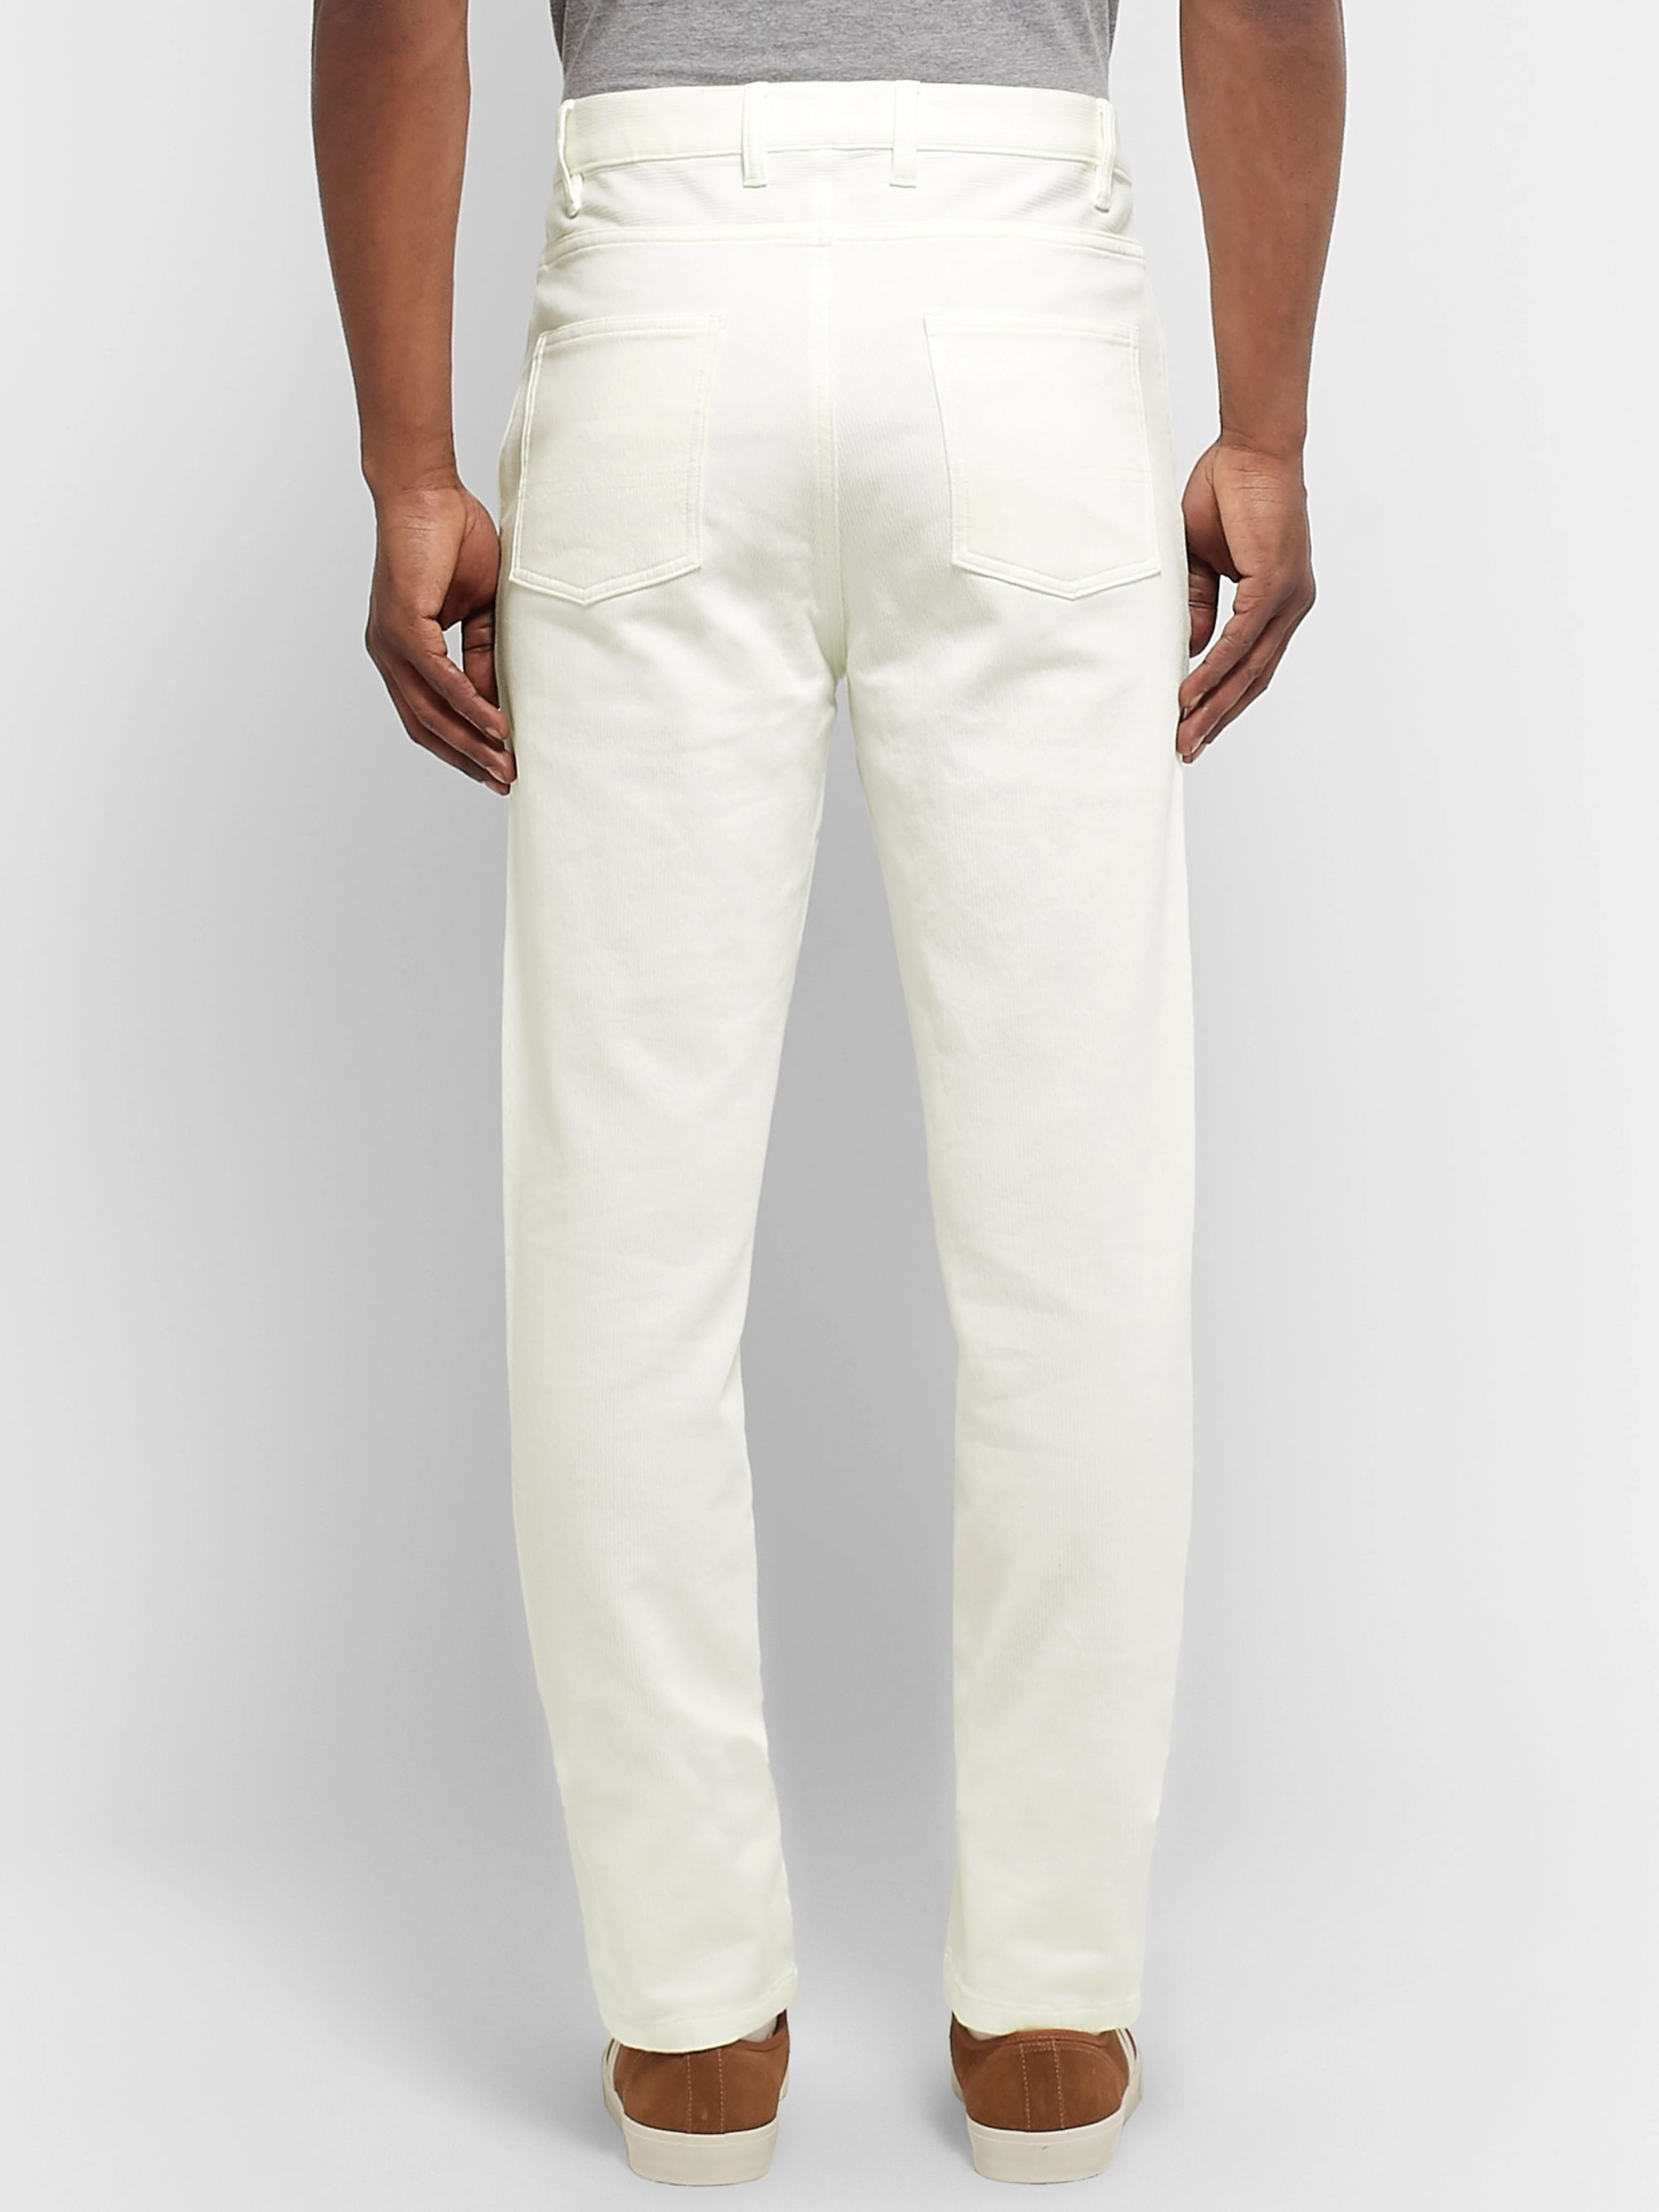 A.P.C. Ribbed Stretch-Cotton Jeans